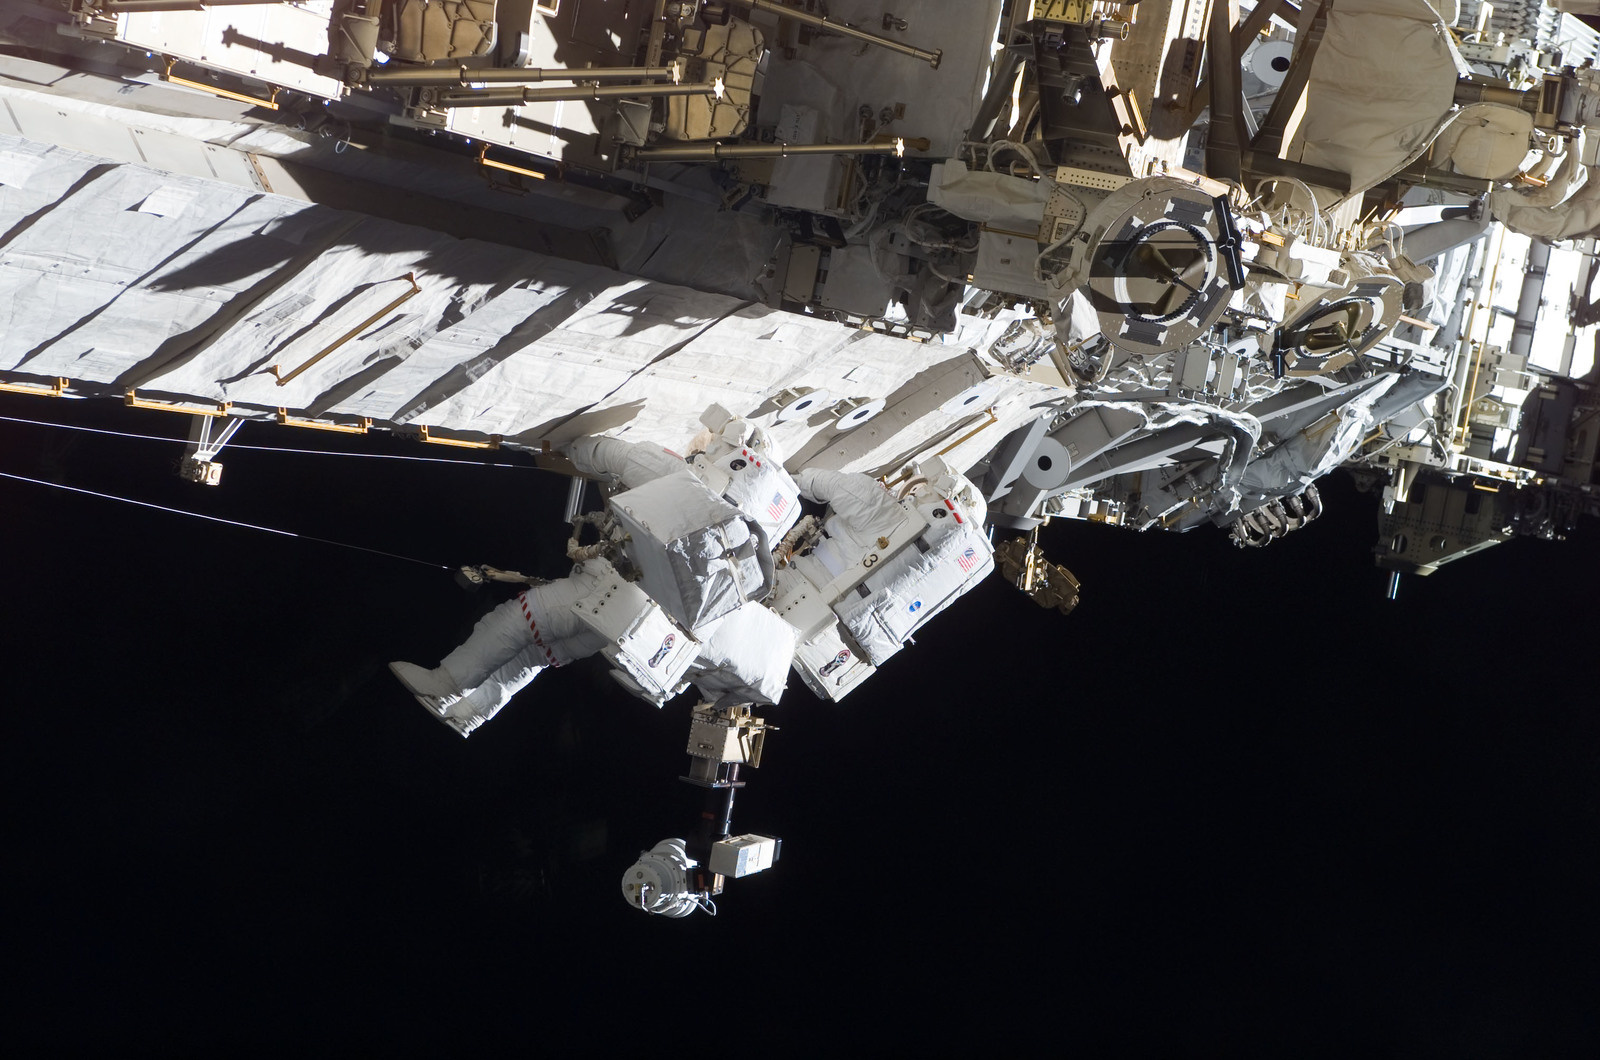 S115E05784 - STS-115 - MacLean and Burbank performing second EVA spacewalk